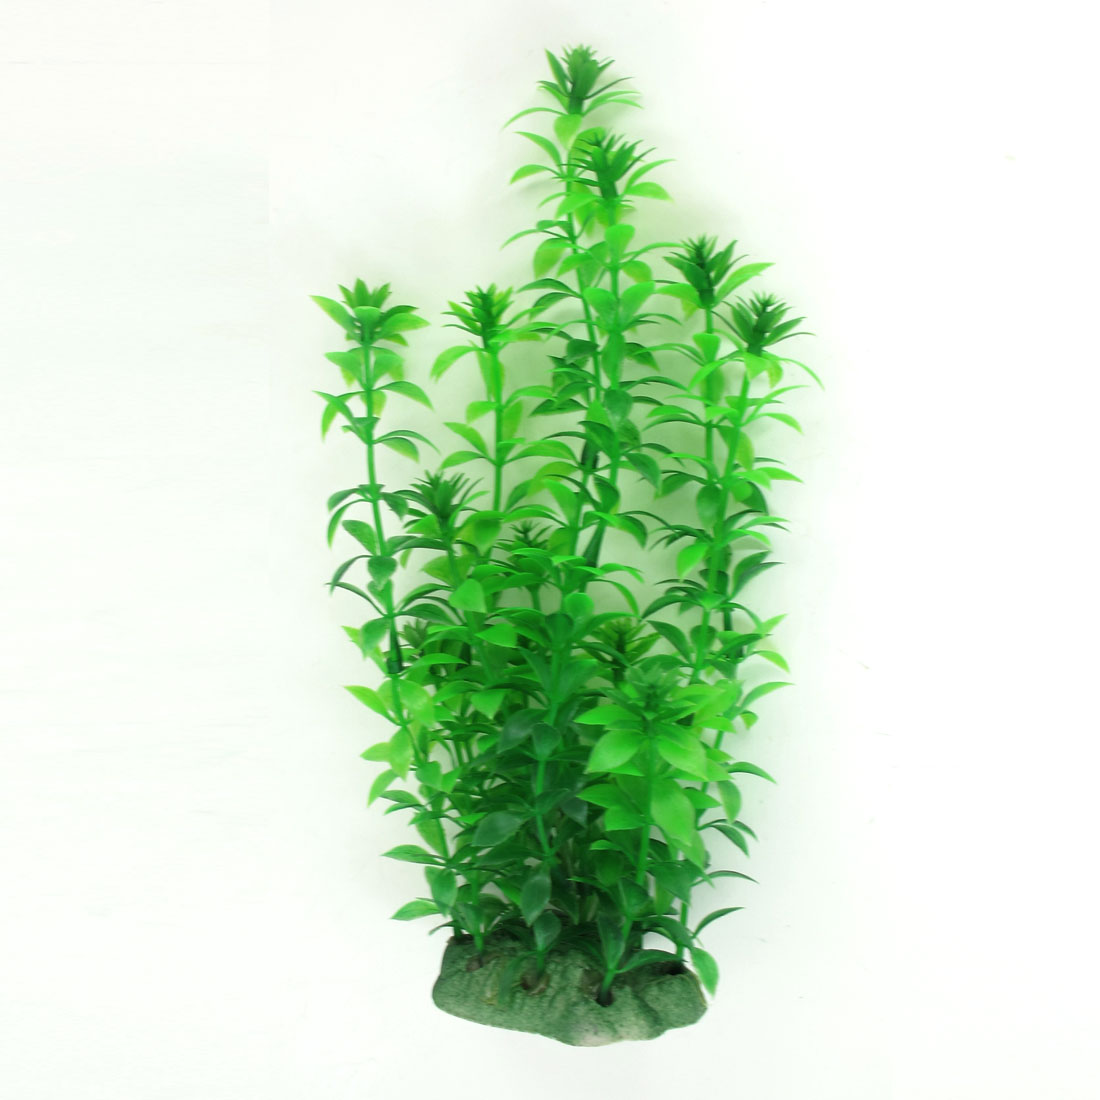 Ceramic Base Green Underwater Plastic Plant 22cm High for Fresh Aquarium